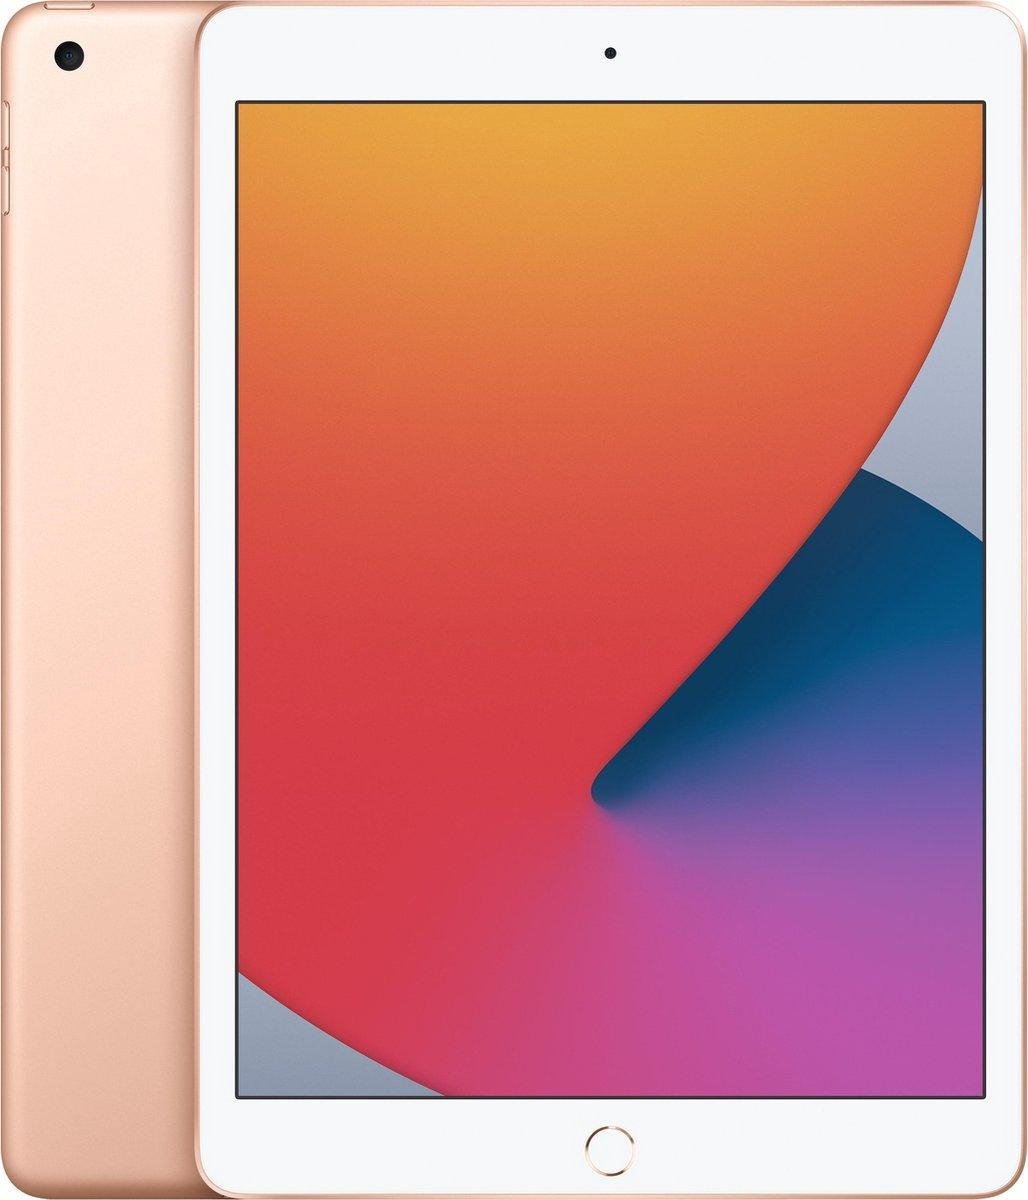 Apple iPad 10.2 Wi-Fi 128GB – Goud rosegoud 8th Gen (2020)